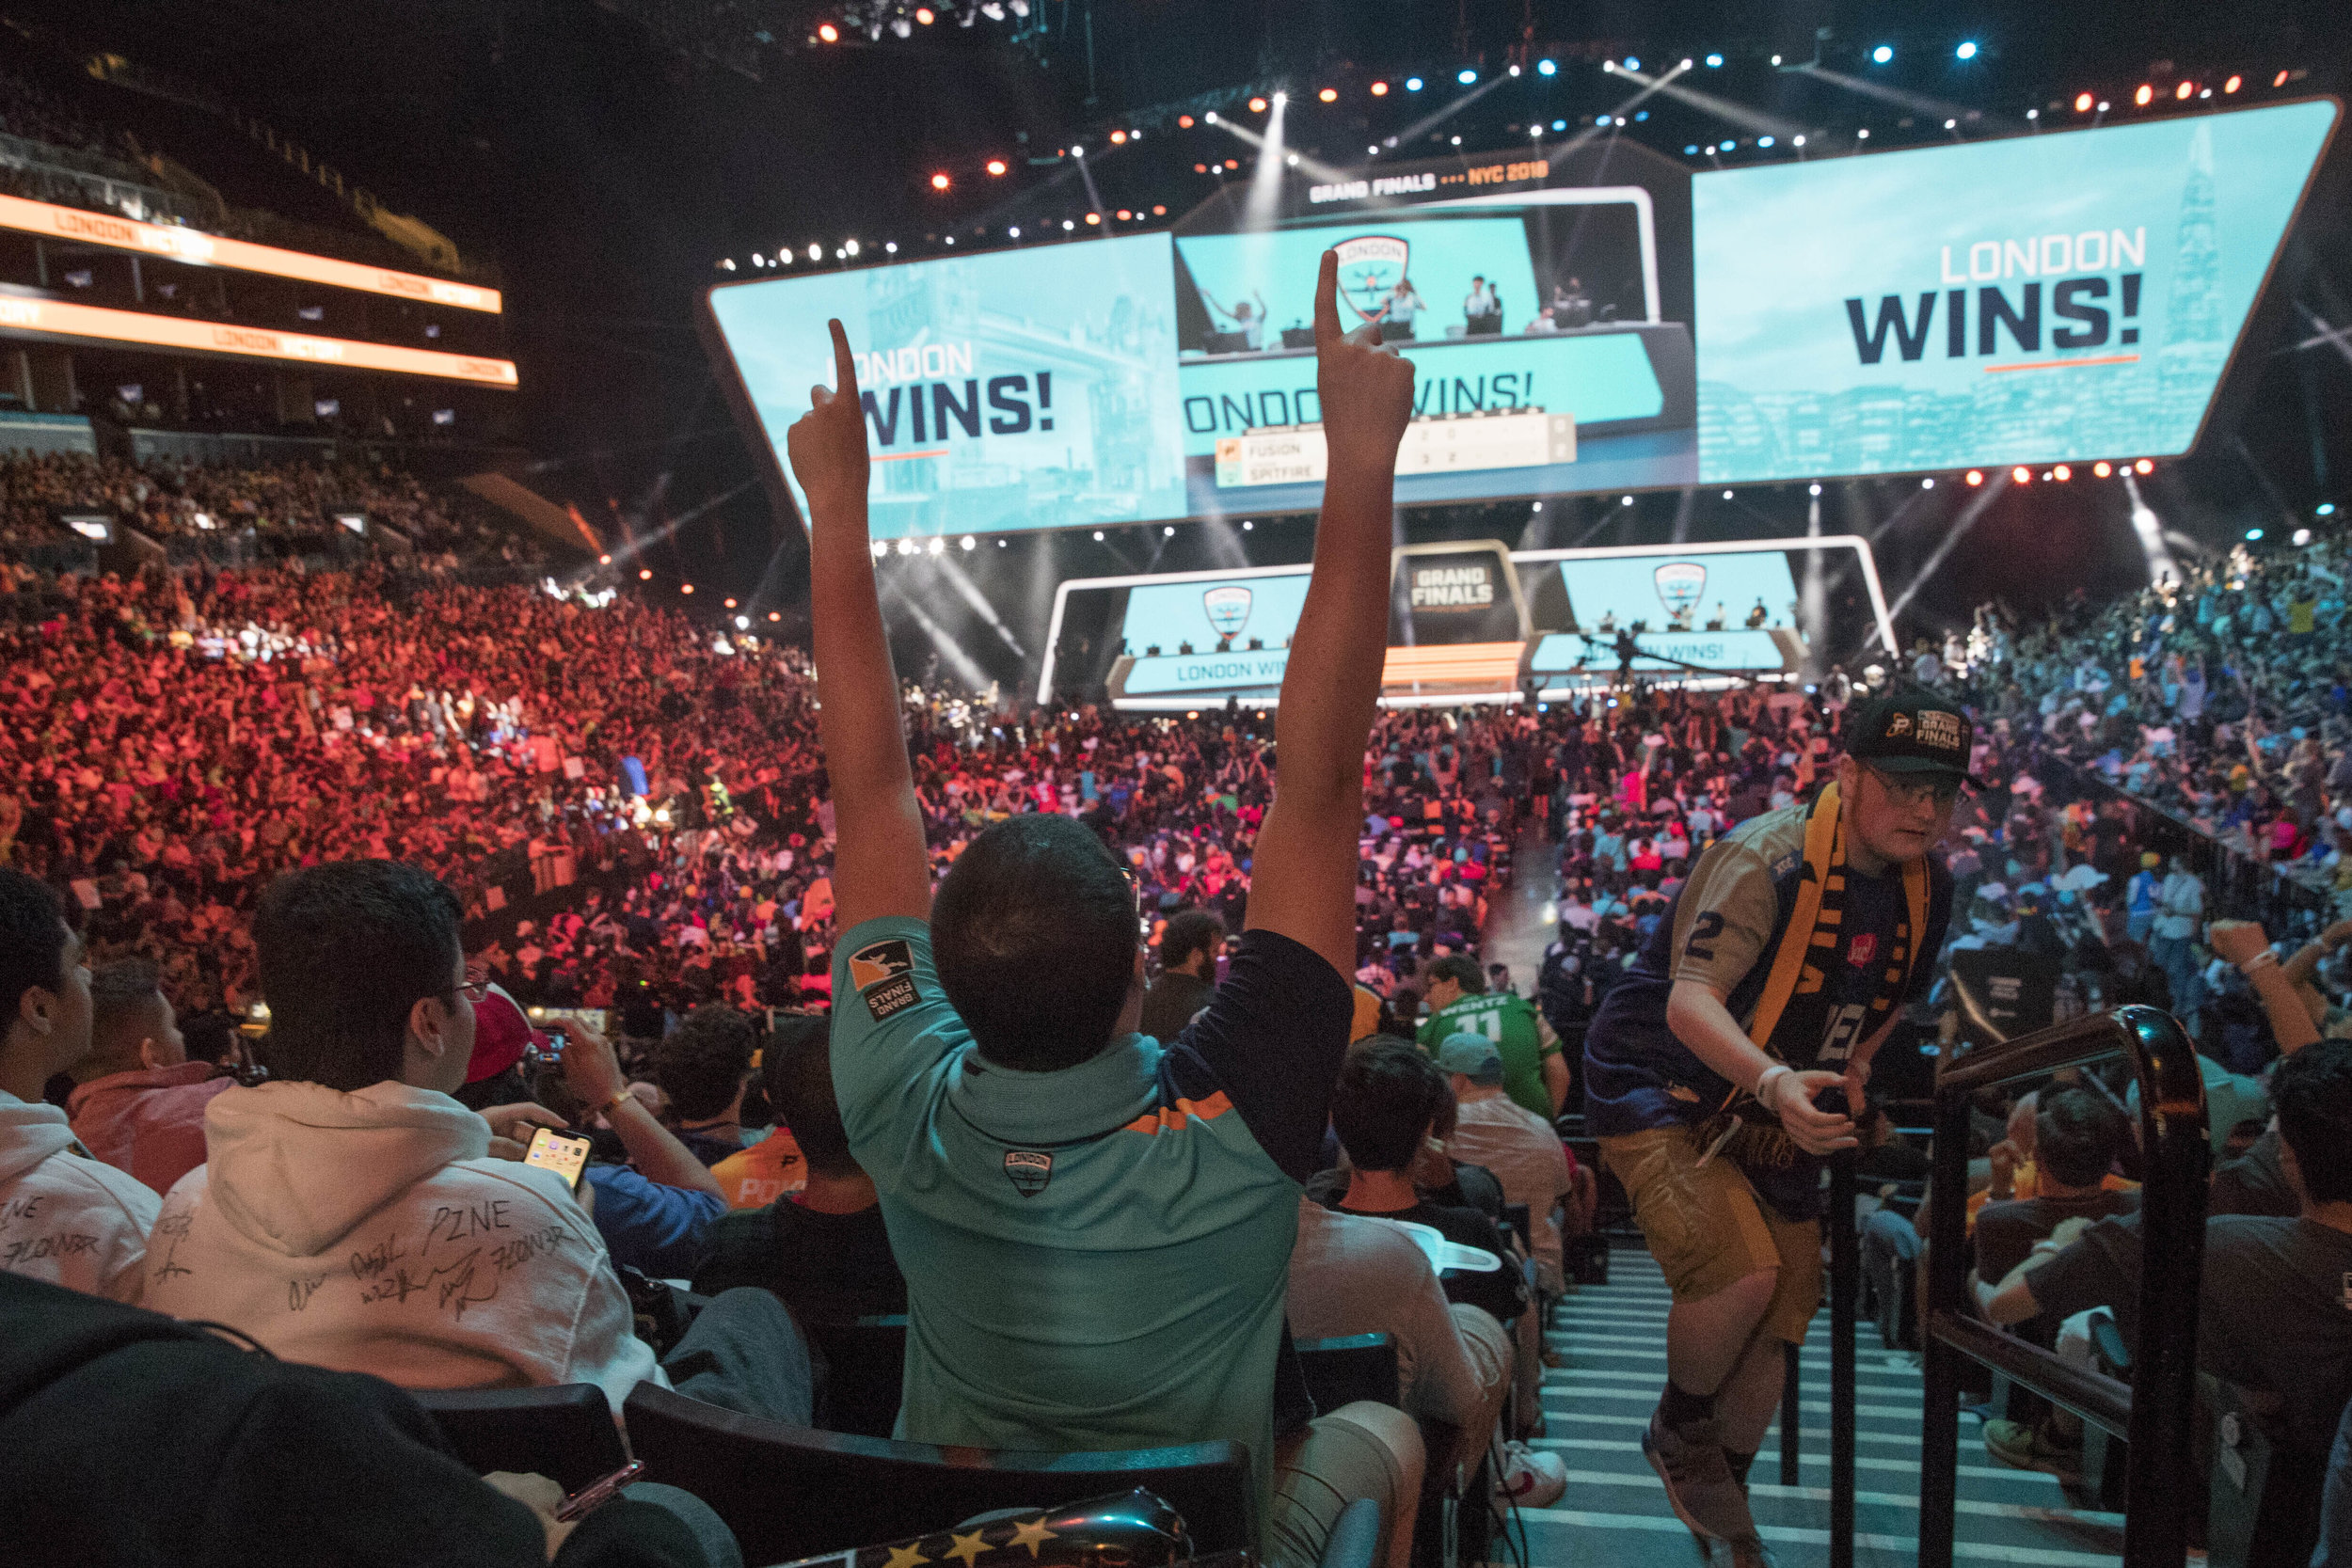 The San Francisco Shock electrified the E-sports scene when they beat the favorited Vancouver Titans in the finals of the Overwatch League Grand Finals.  Photo from The Associated Press.